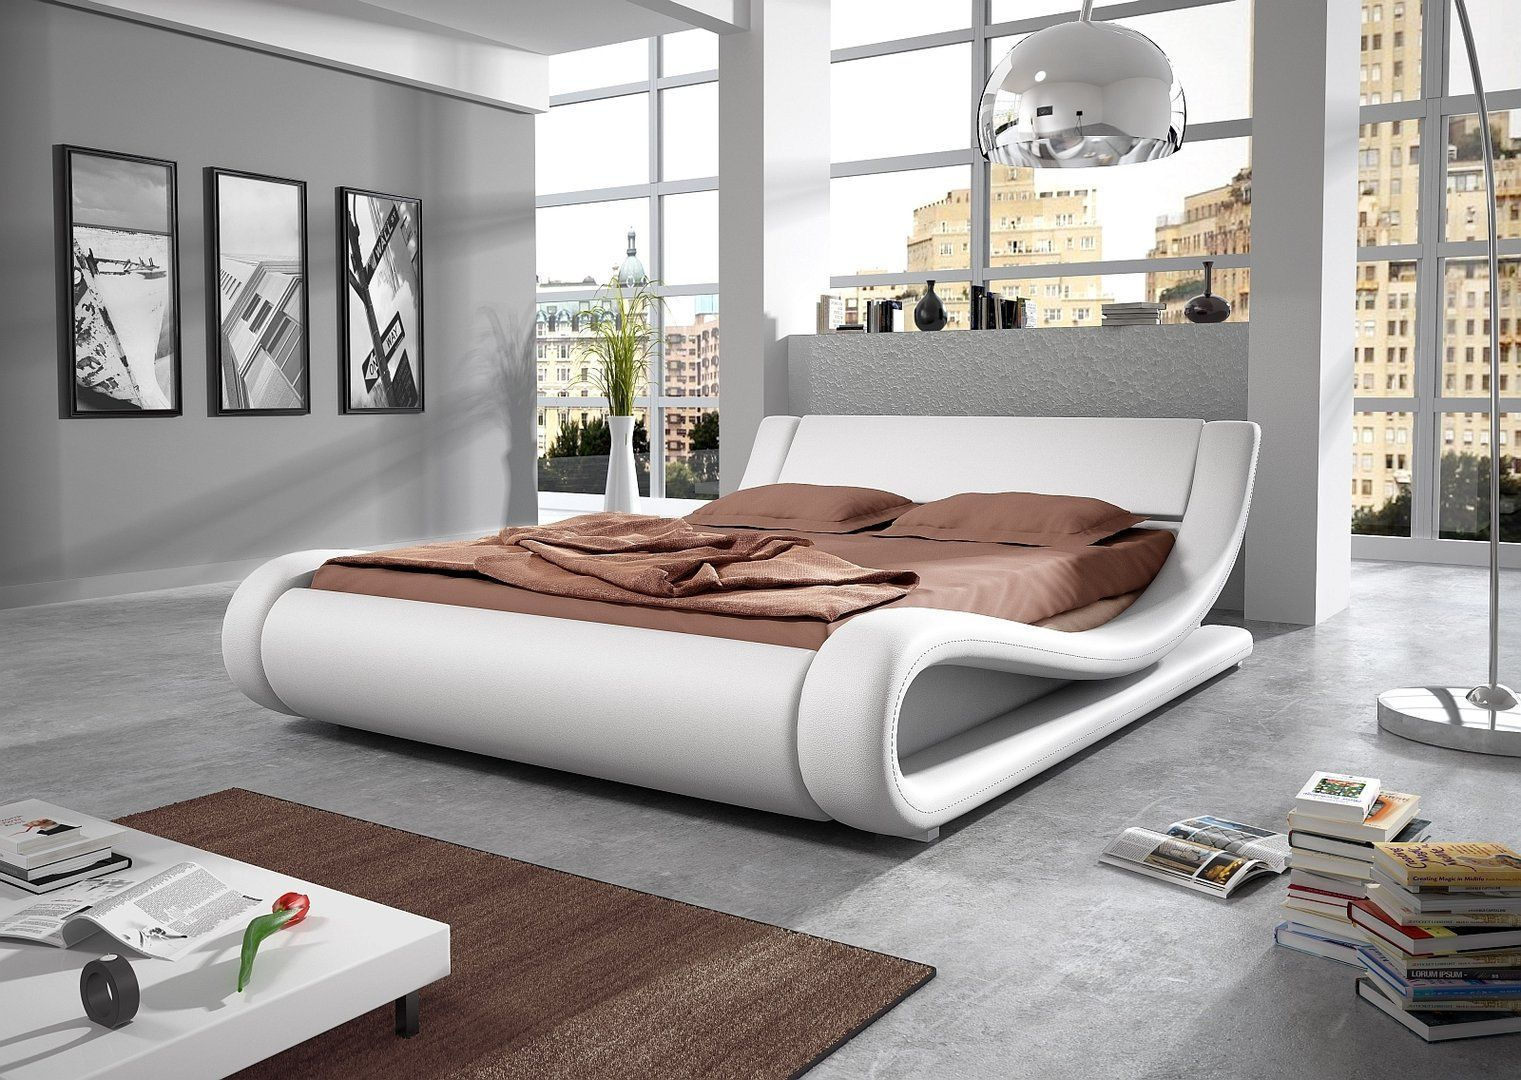 Bedroom Unique Bed Design Elegant Furniture Designs For Your Own Room